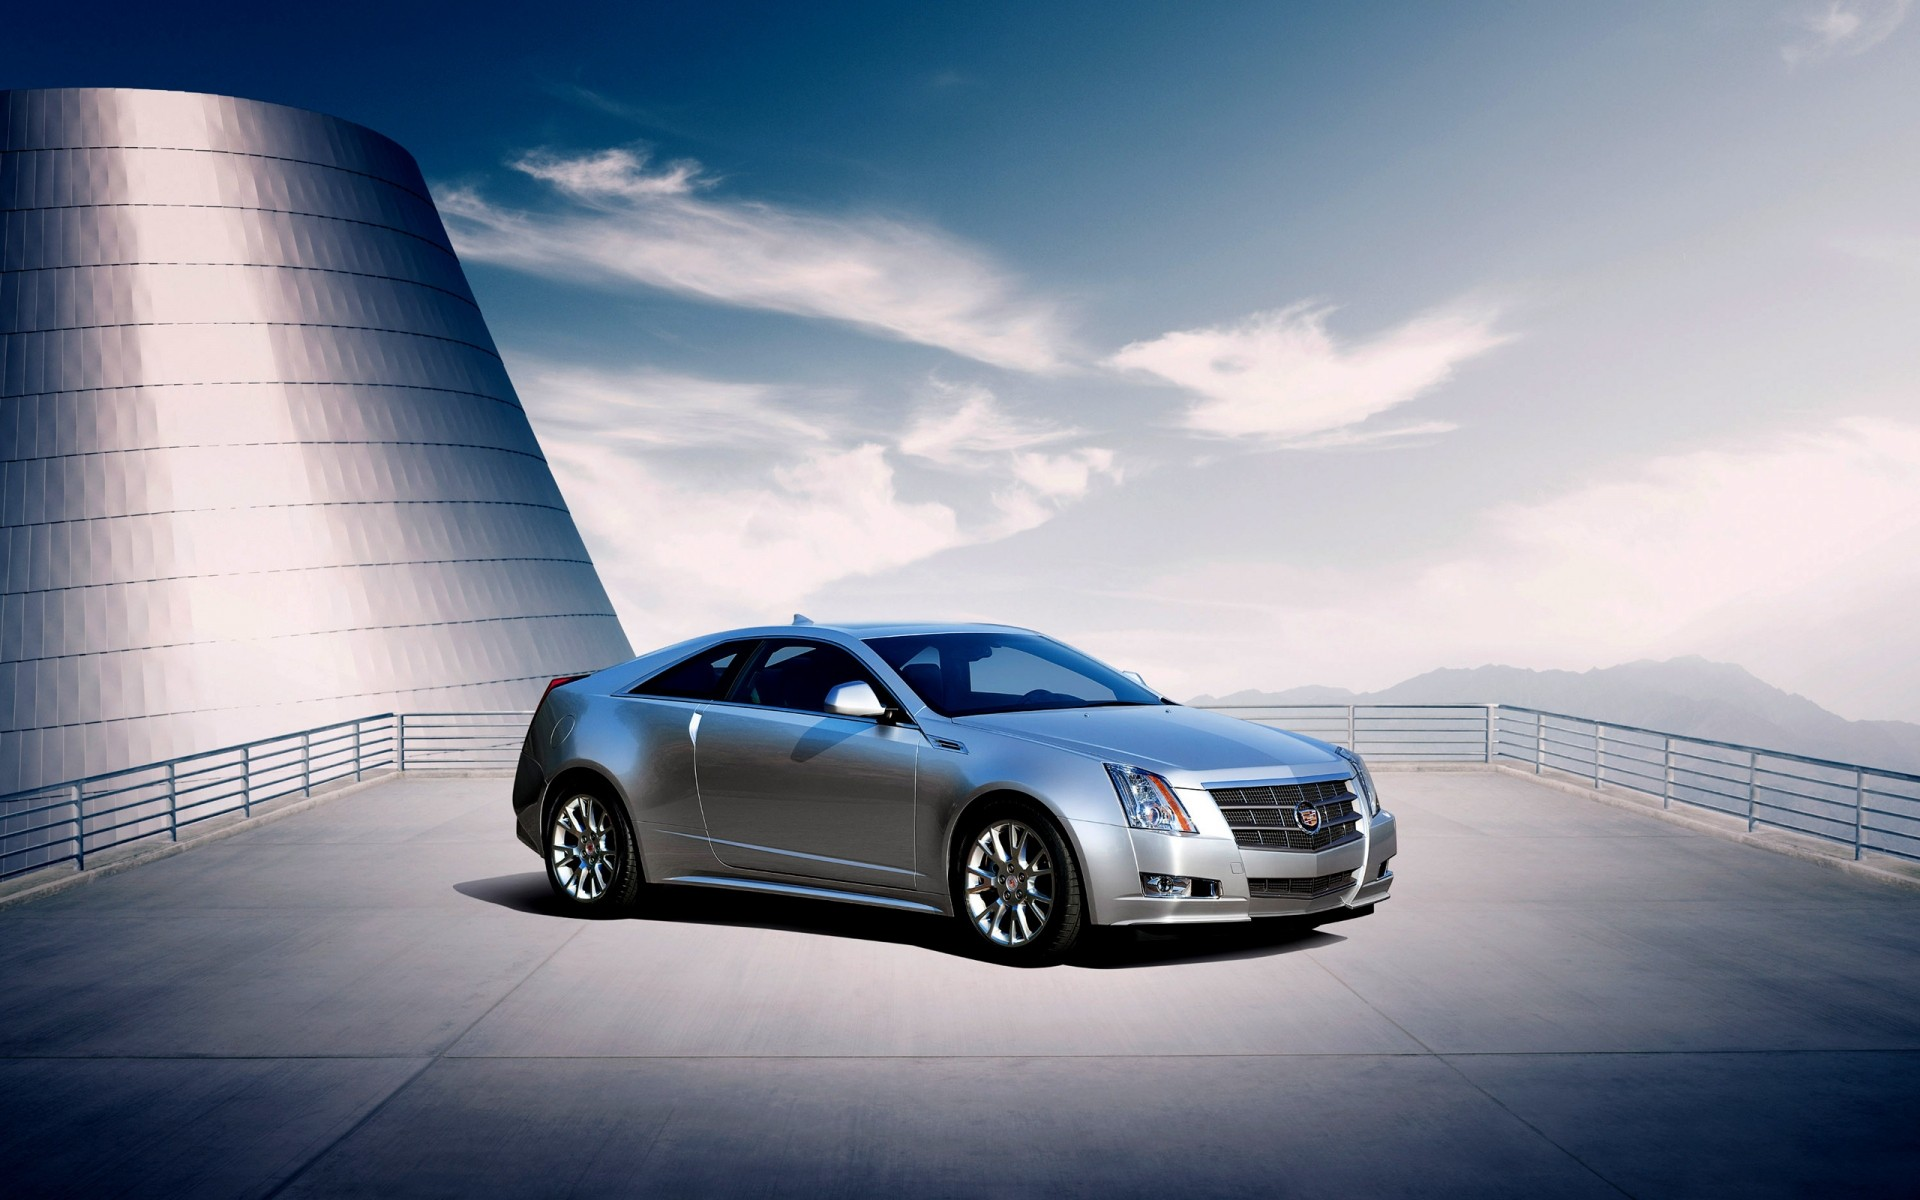 2011 Cadillac CTS купе